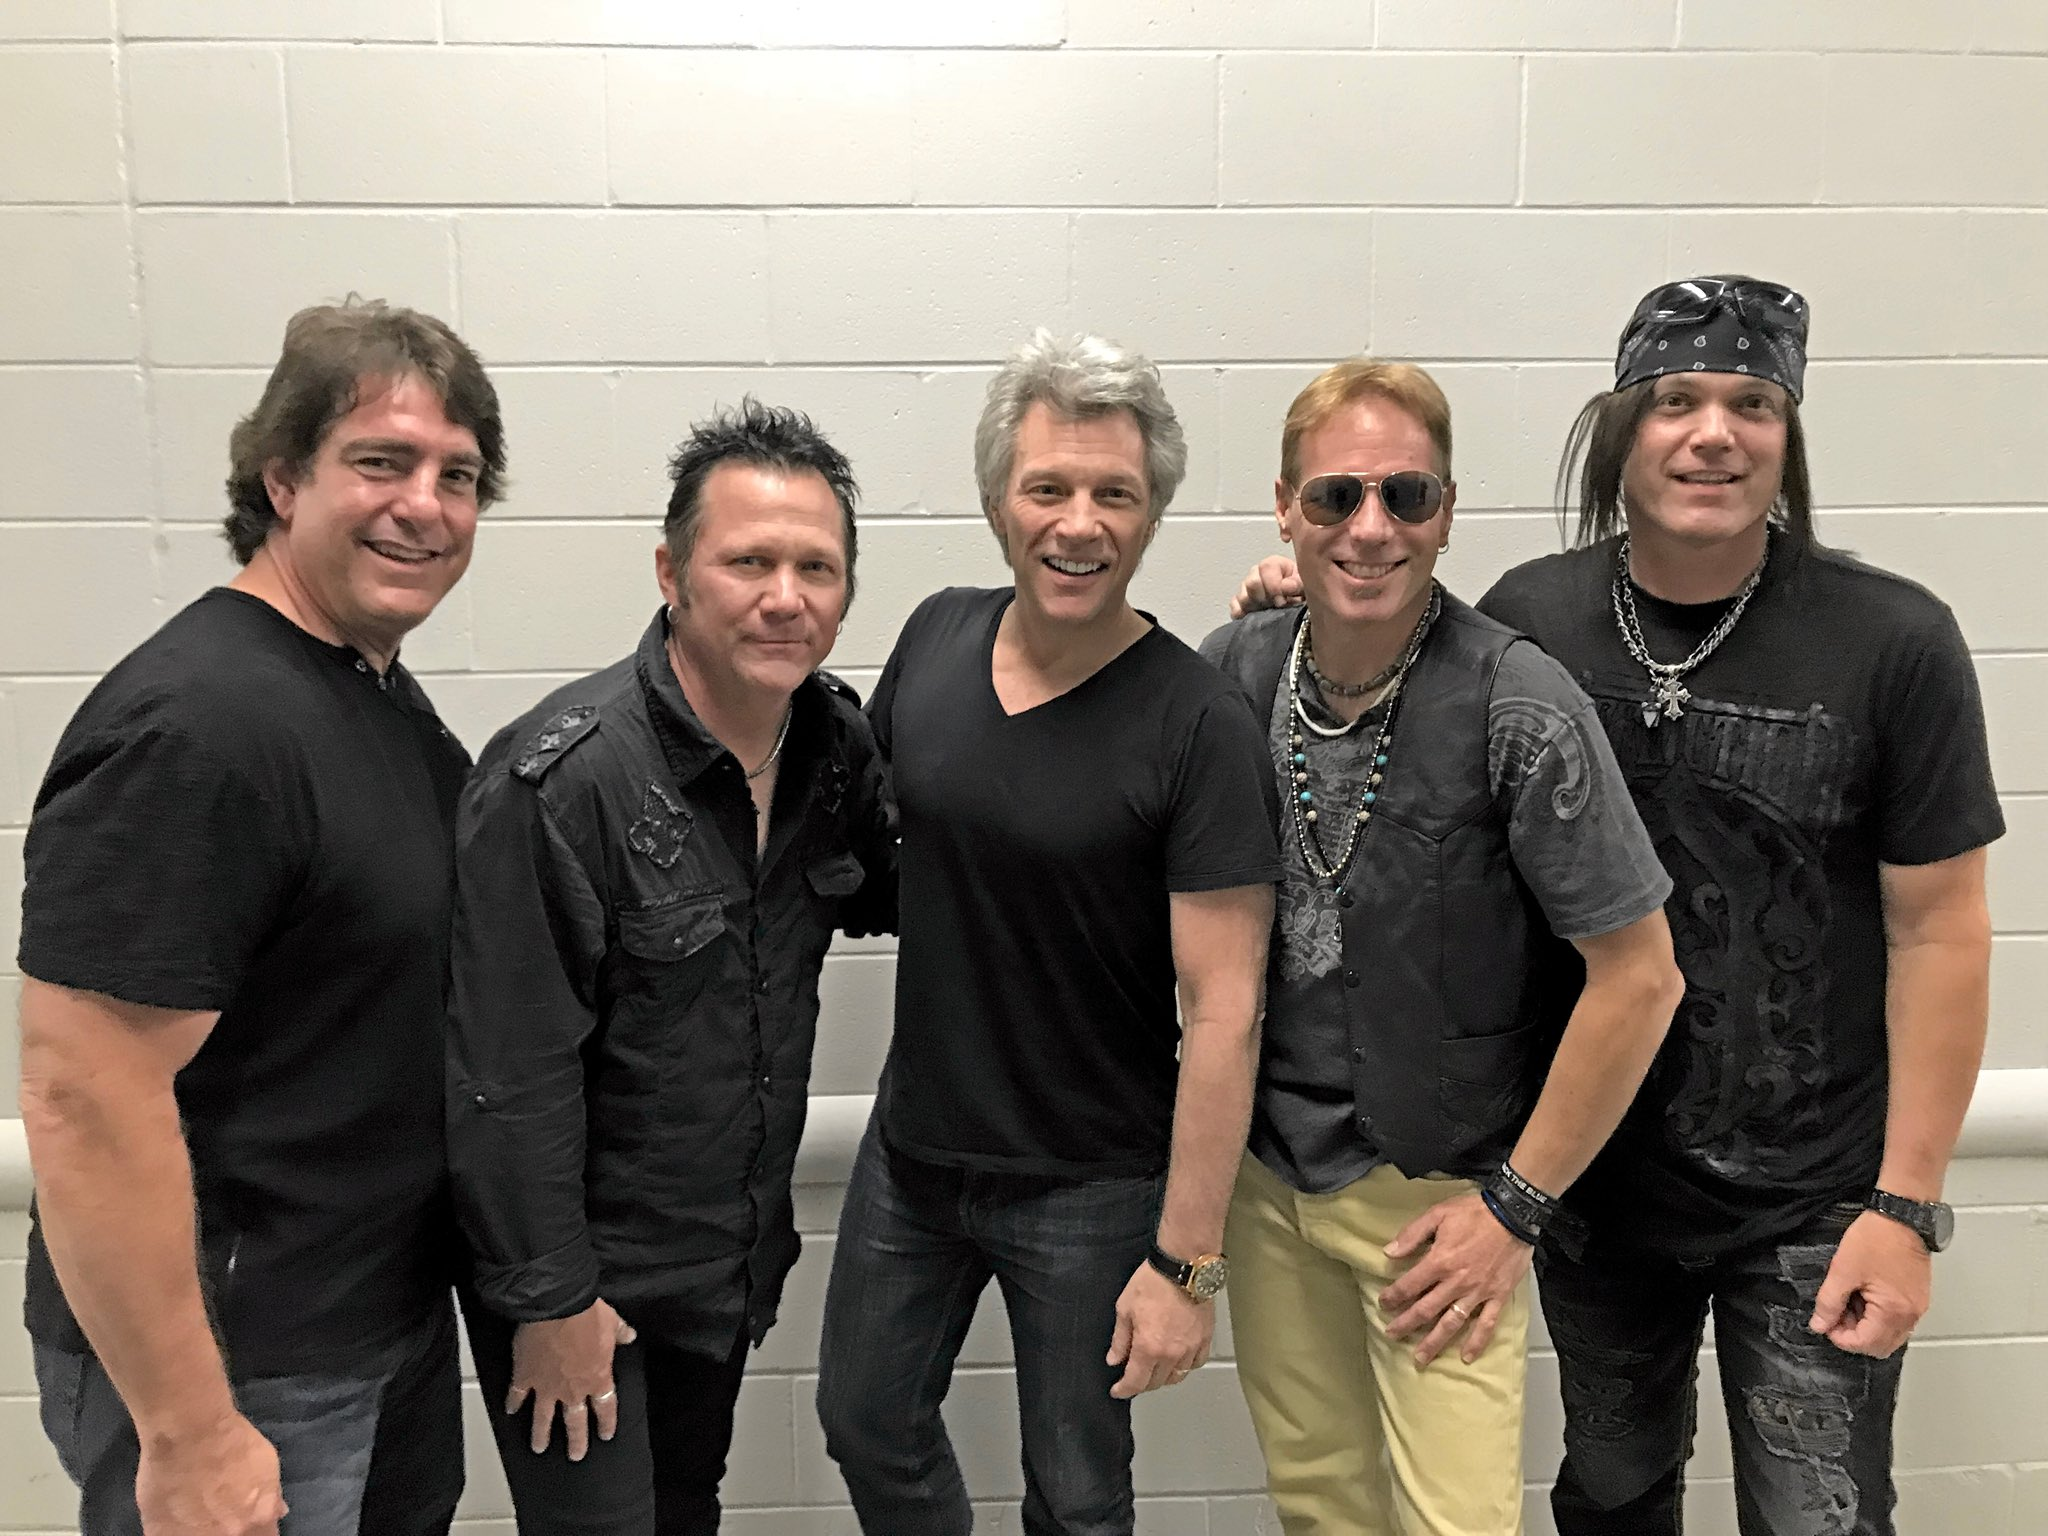 Orlando rocked last night! JBJ with opening act, Kings County + the night's setlist. #THINFStour https://t.co/uno6uXcGWV